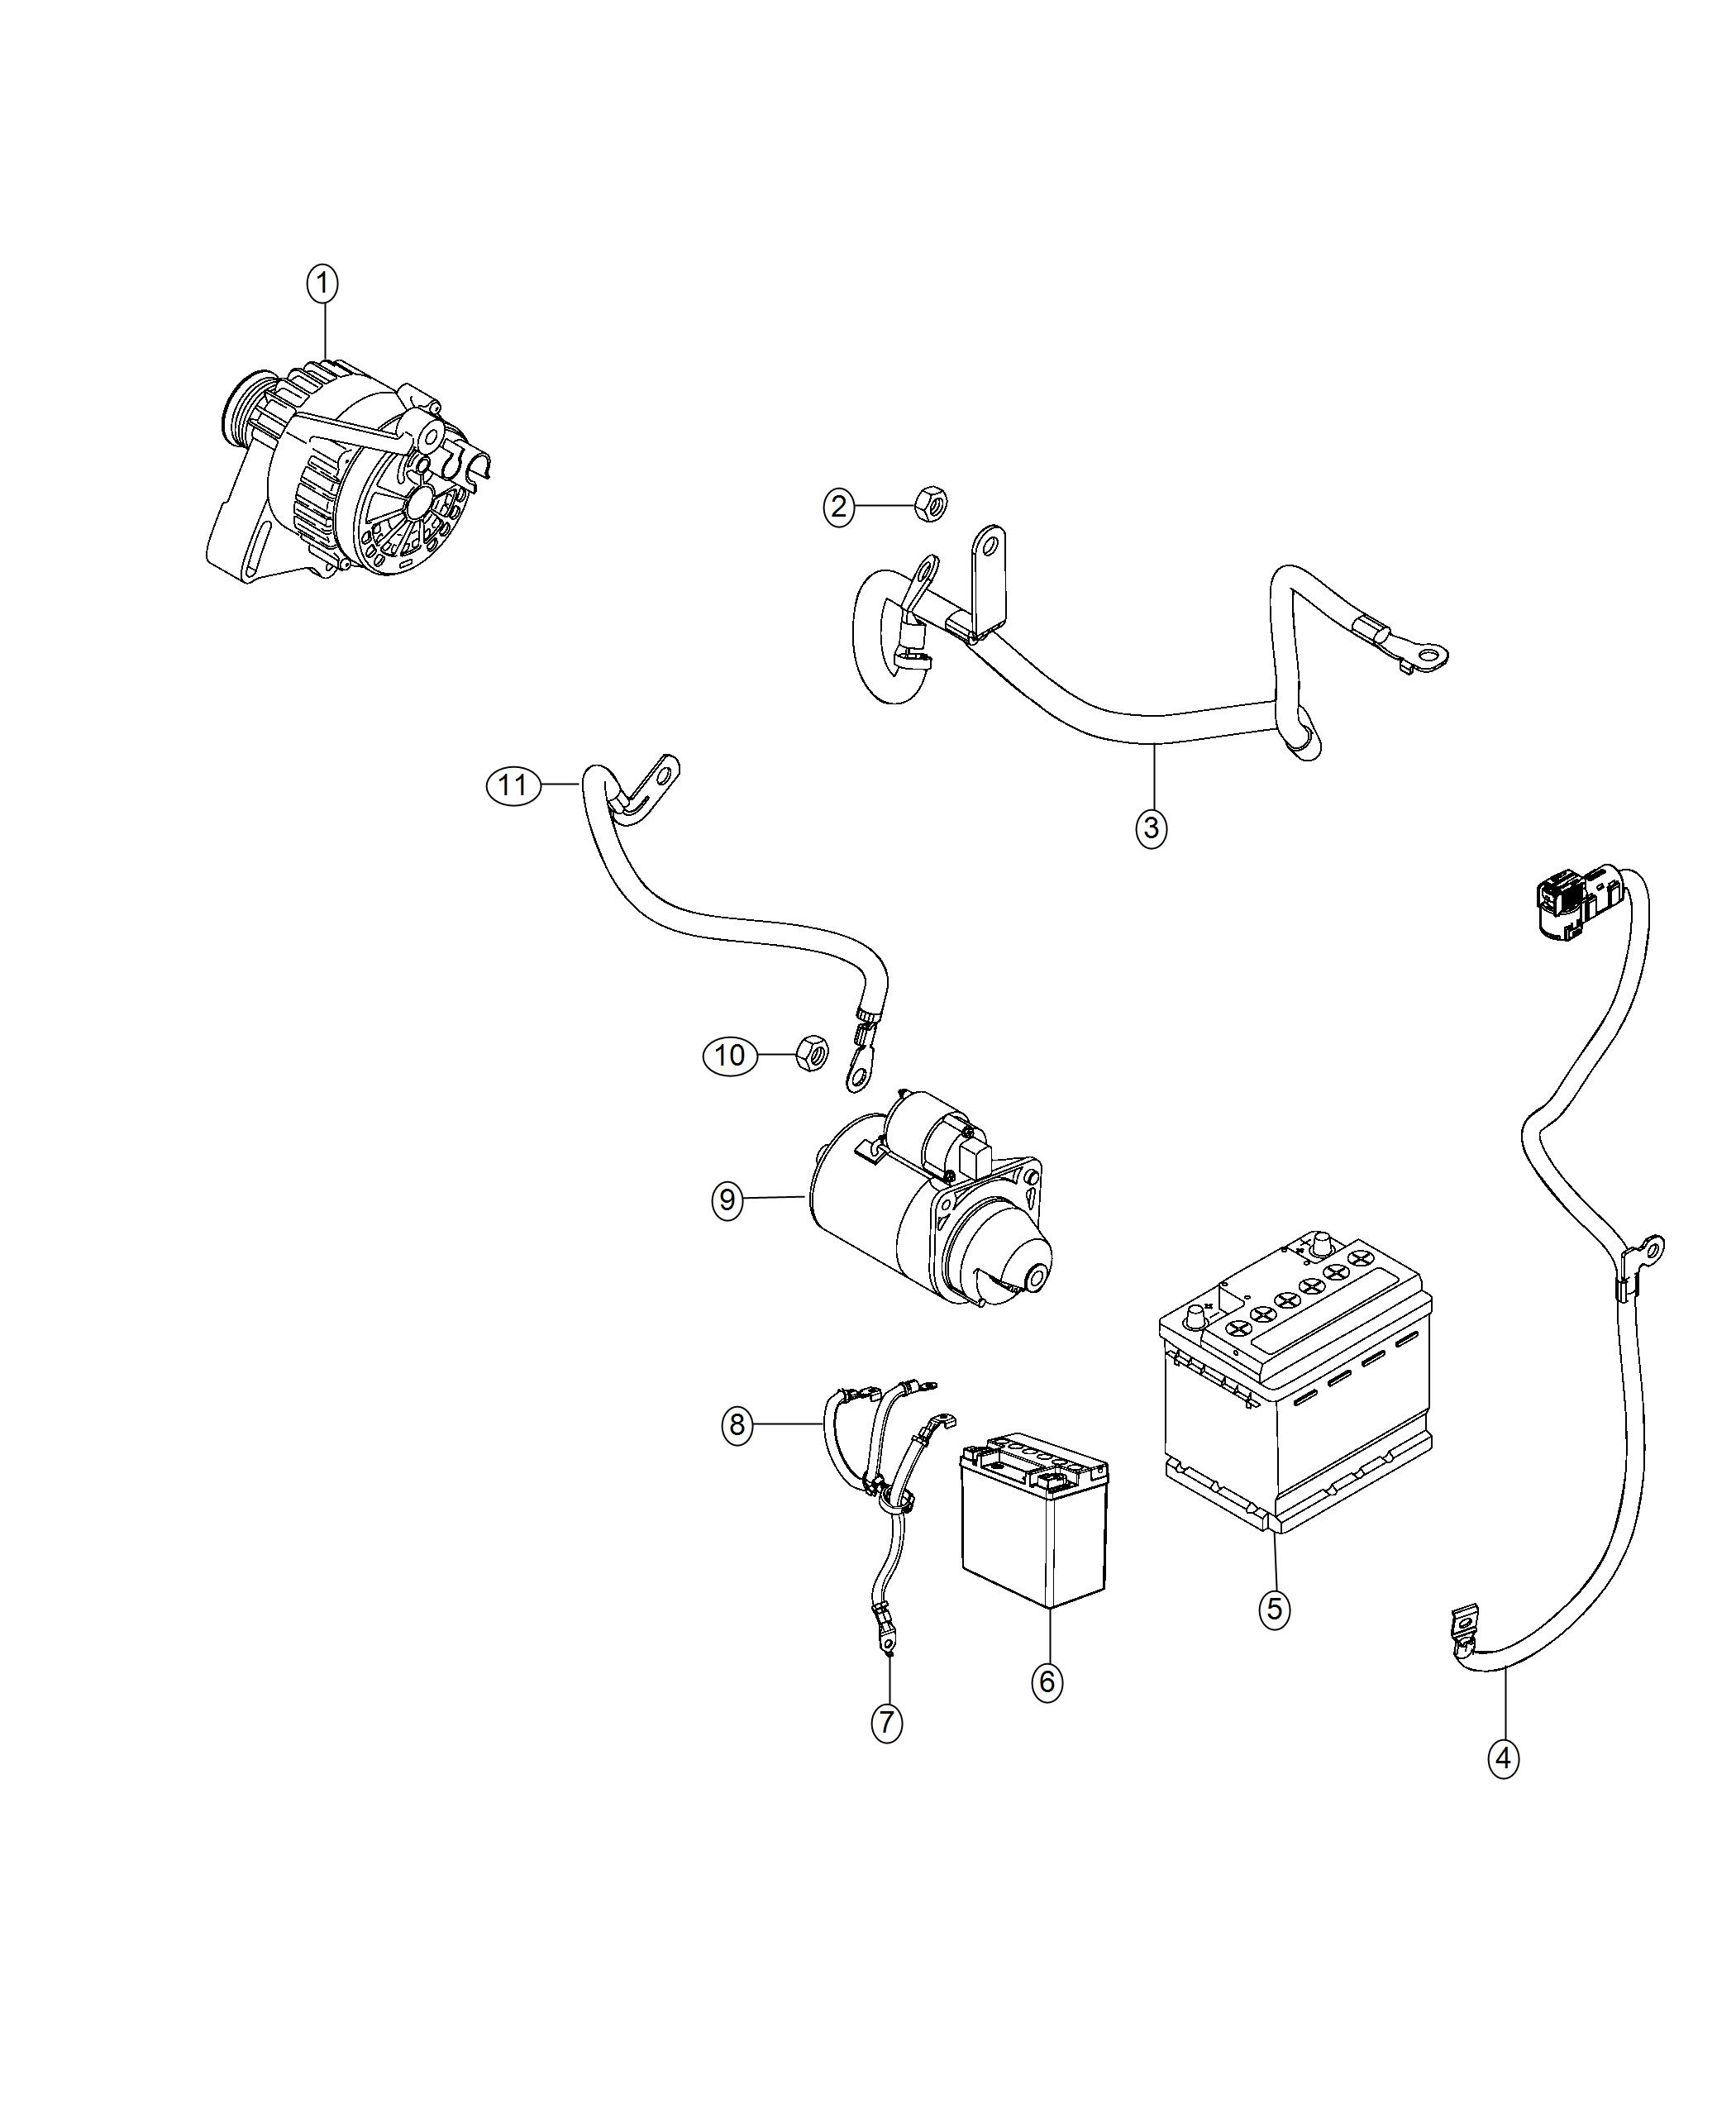 2019 Jeep Compass Wiring. Battery positive. Auxiliary